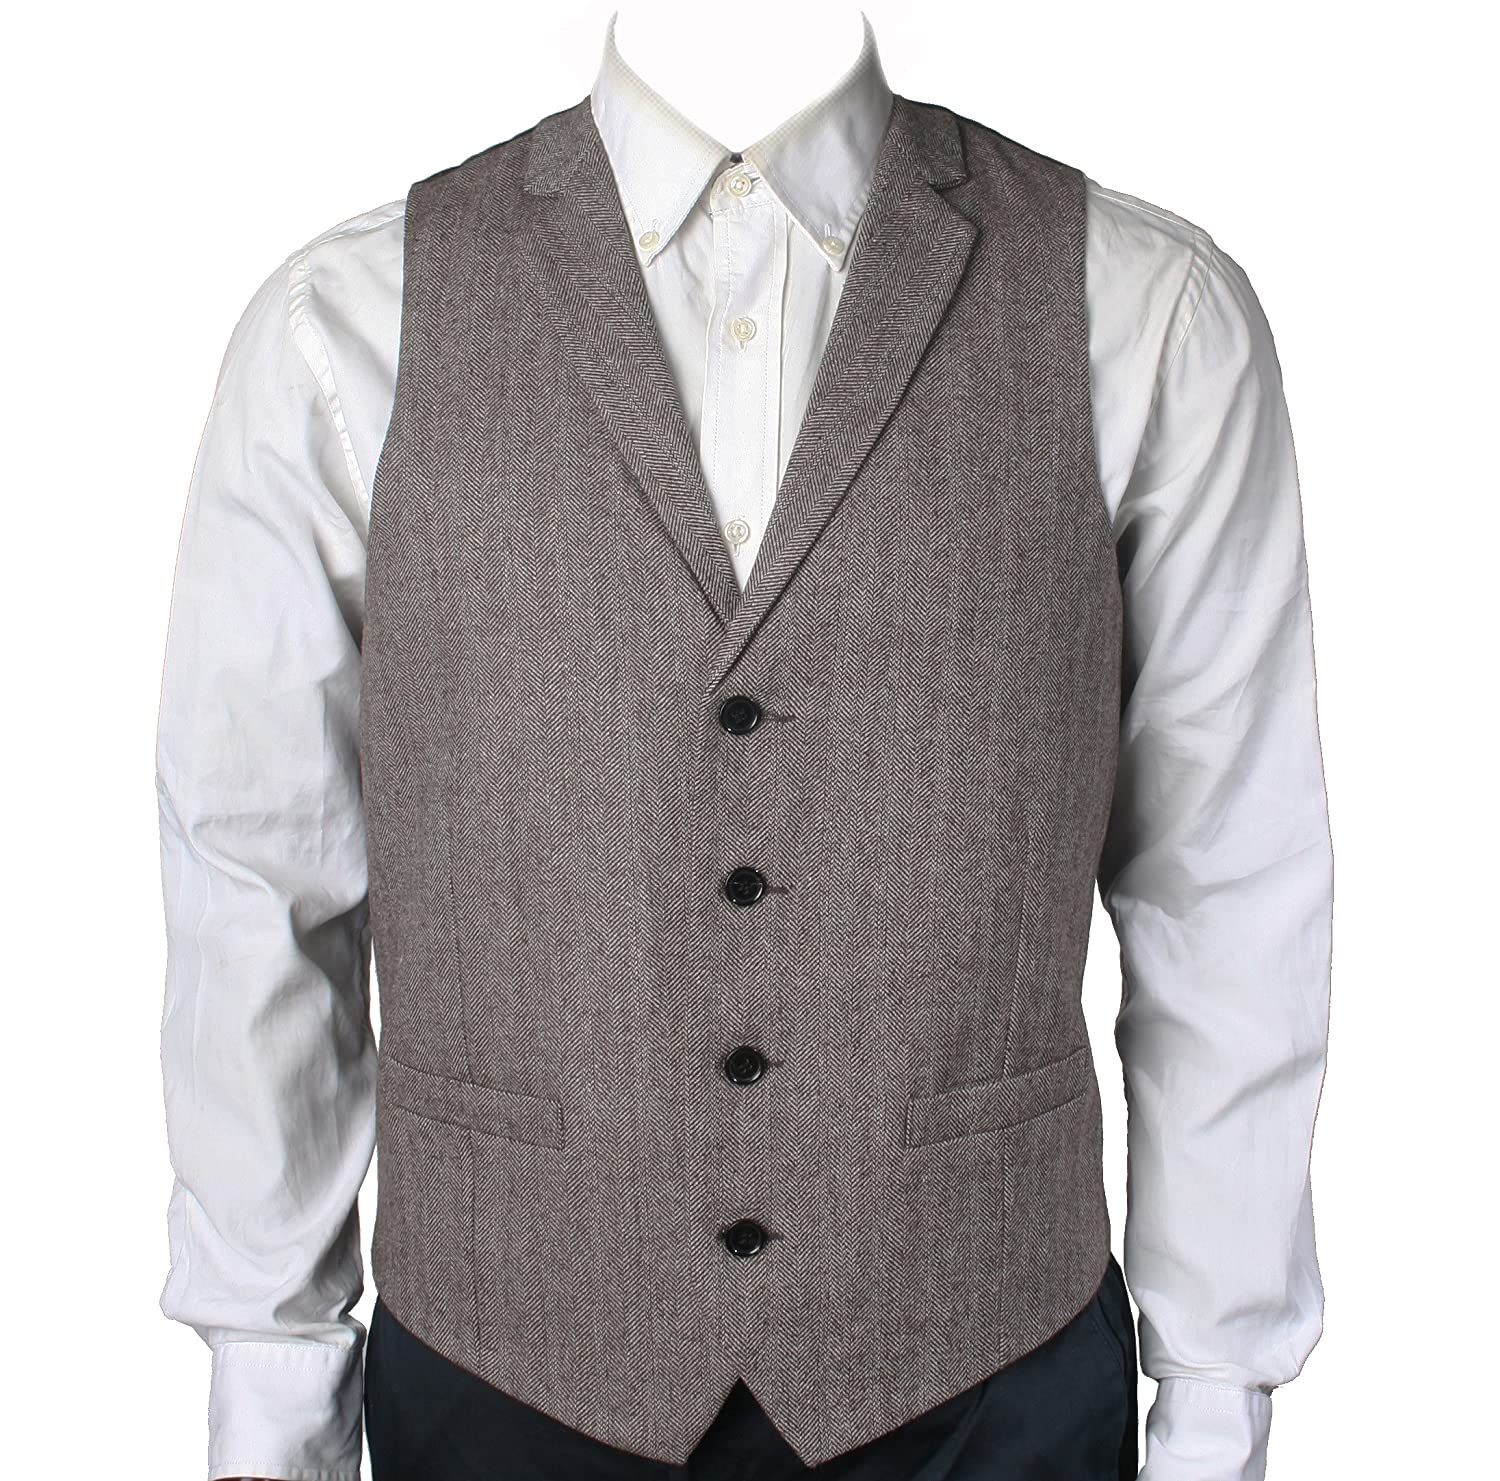 Men's Vintage Vests, Sweater Vests Herringbone/Tweed Tailored Collar Suit Vest $37.00 AT vintagedancer.com